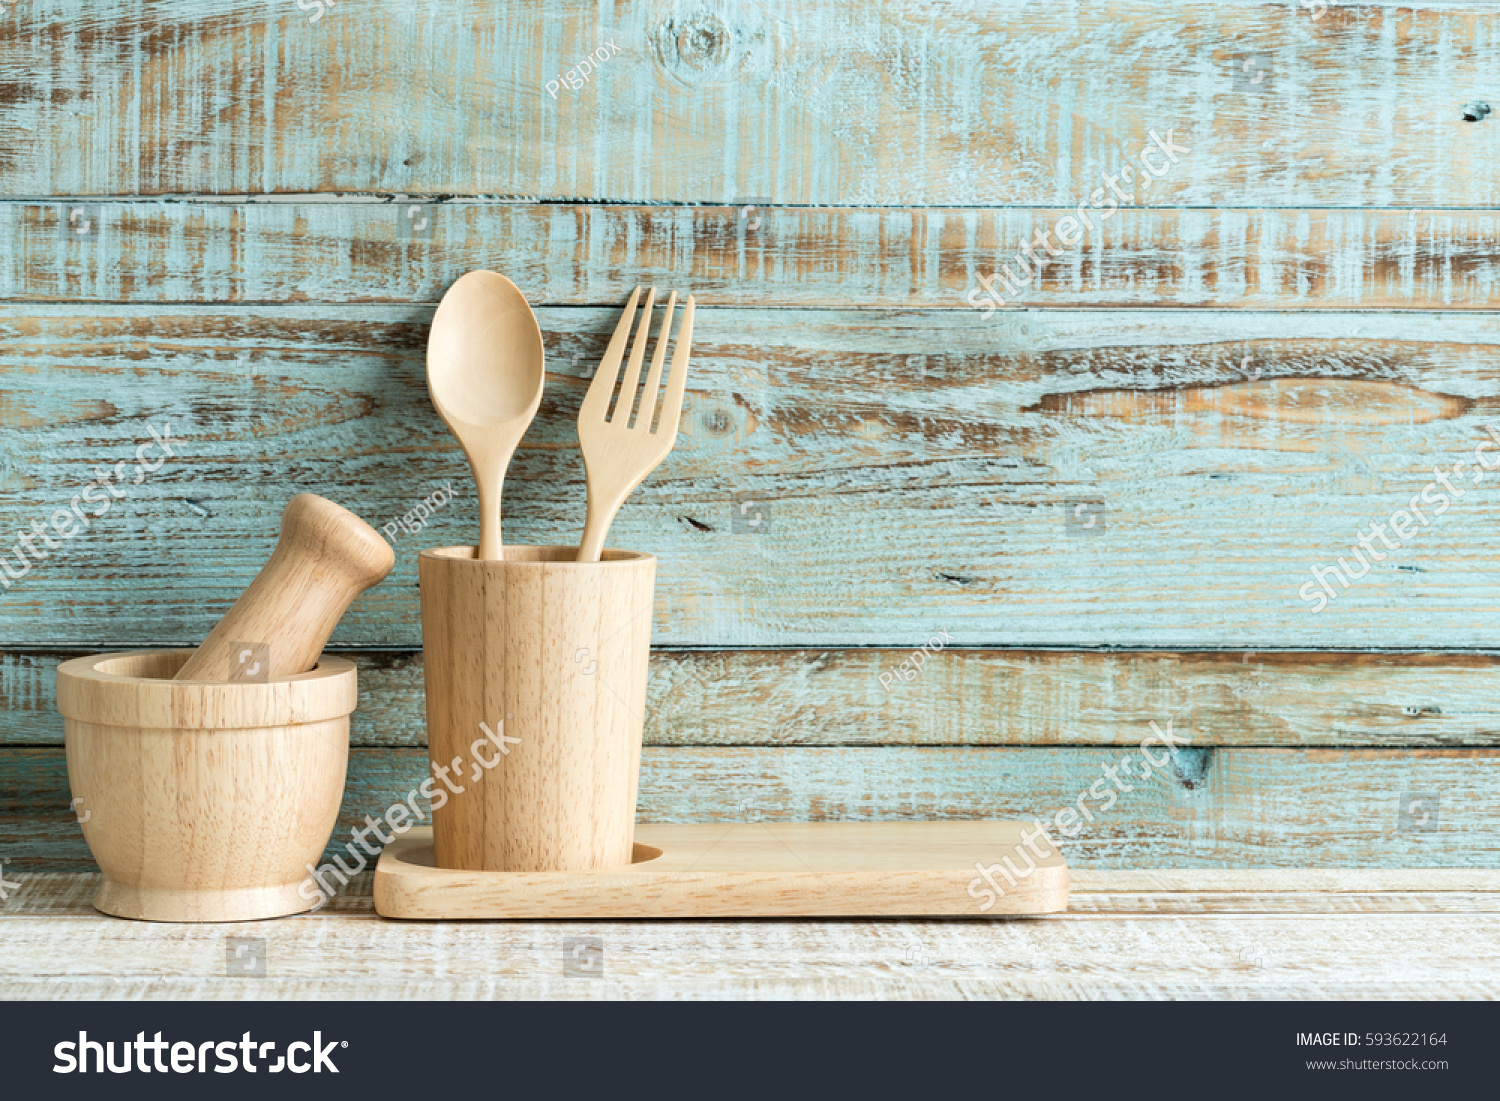 Kitchen Cooking Utensils Wood Storage On Stock Photo (Edit Now ...